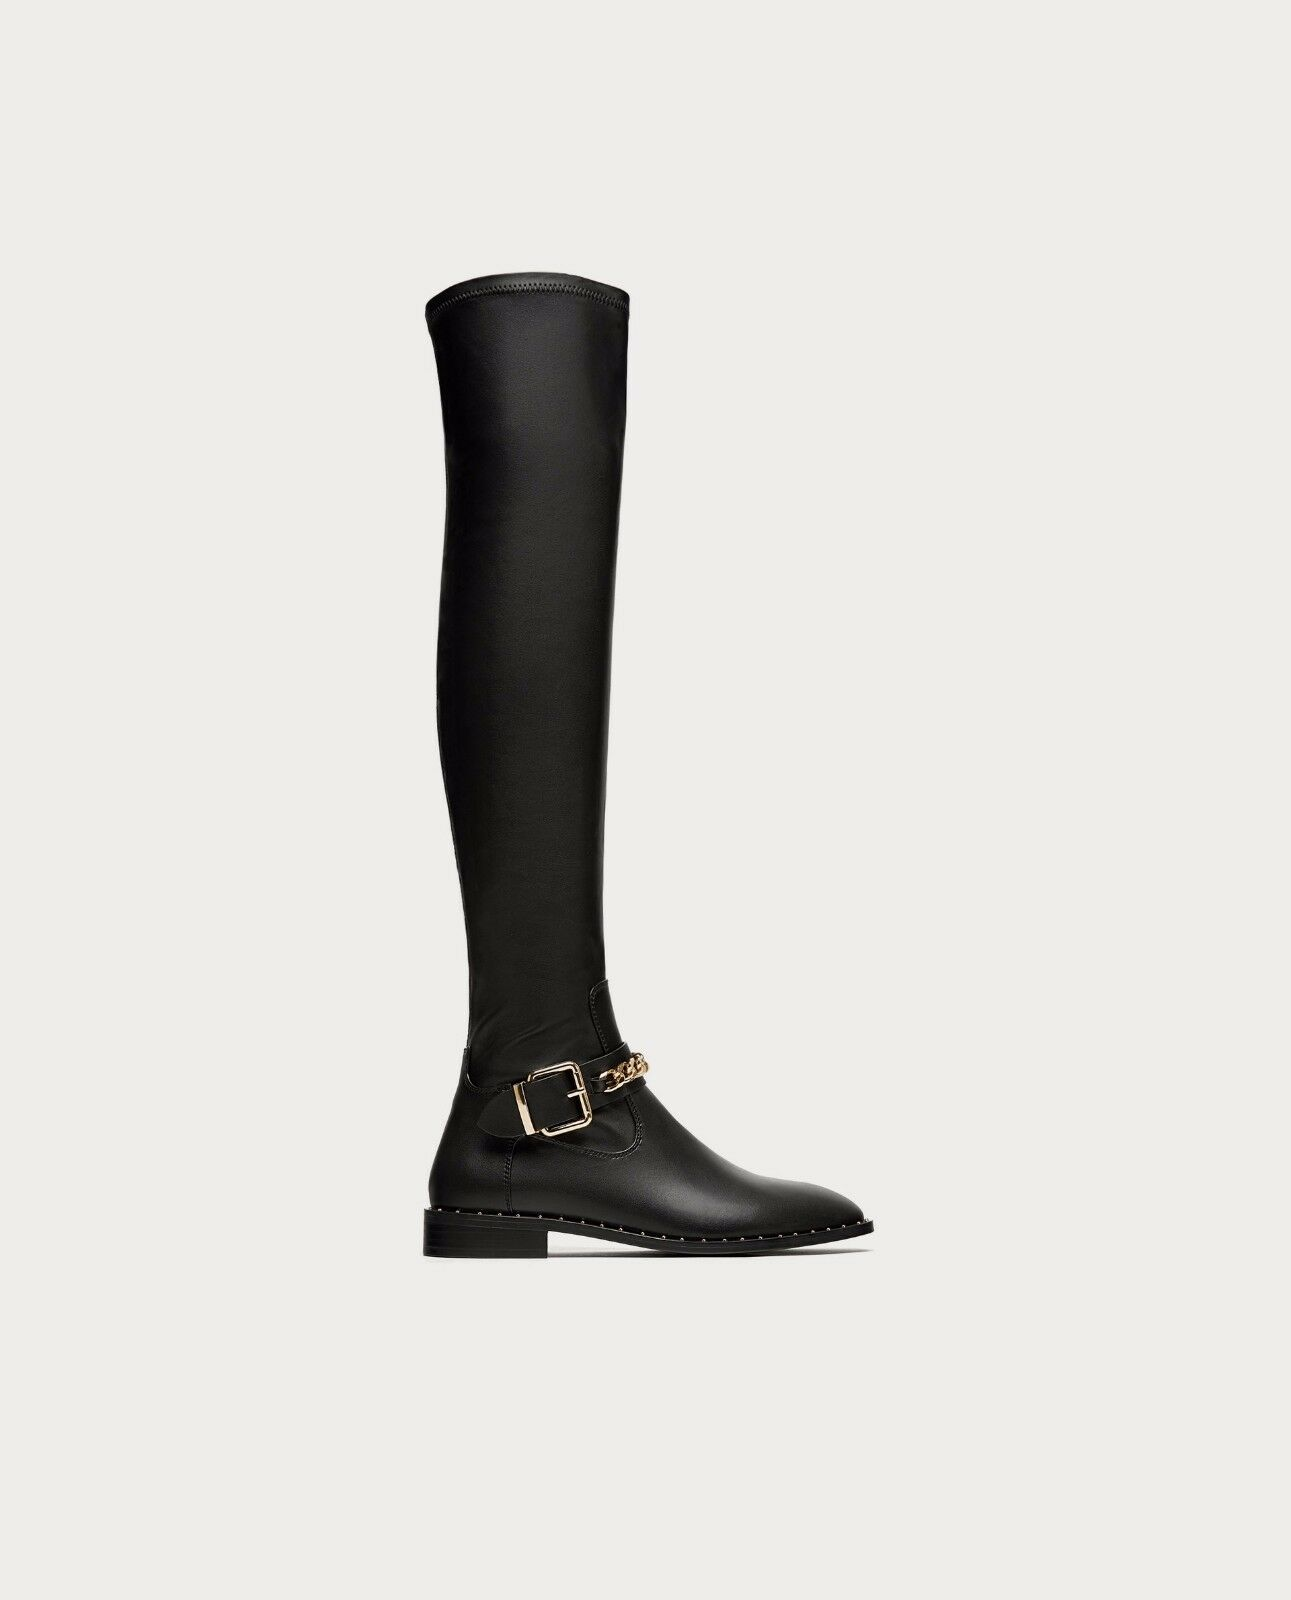 ZARA WITH NEW FLAT OVER-THE-KNEE Stiefel WITH ZARA CHAIN DETAIL 7054/201 7f9810